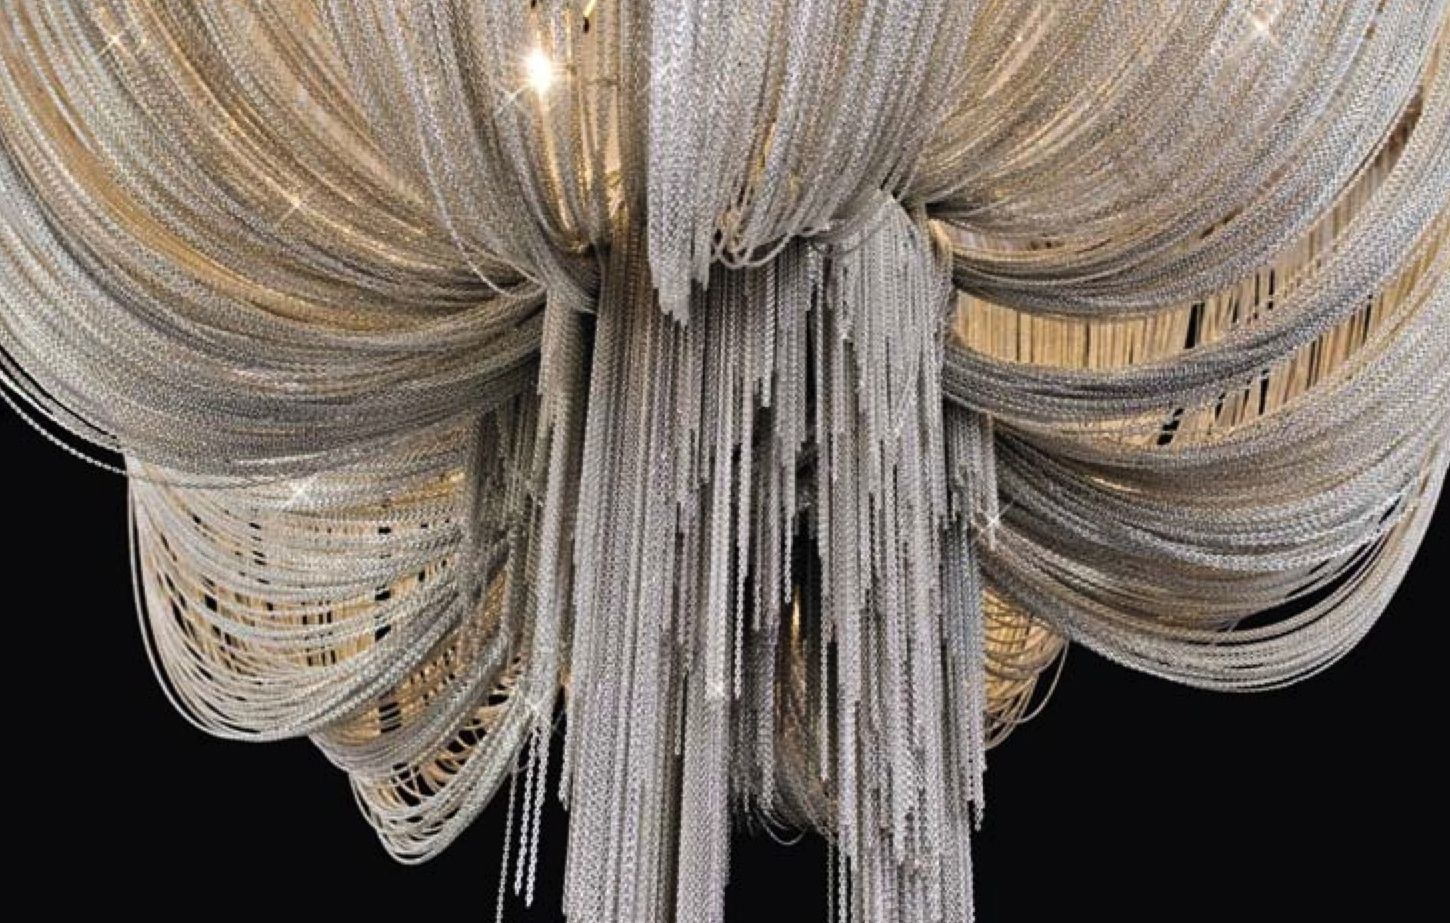 Atlantis 3 tier suspension by terzani light pinterest atlantis barlas baylars nautically inspired atlantis chandelier arubaitofo Choice Image